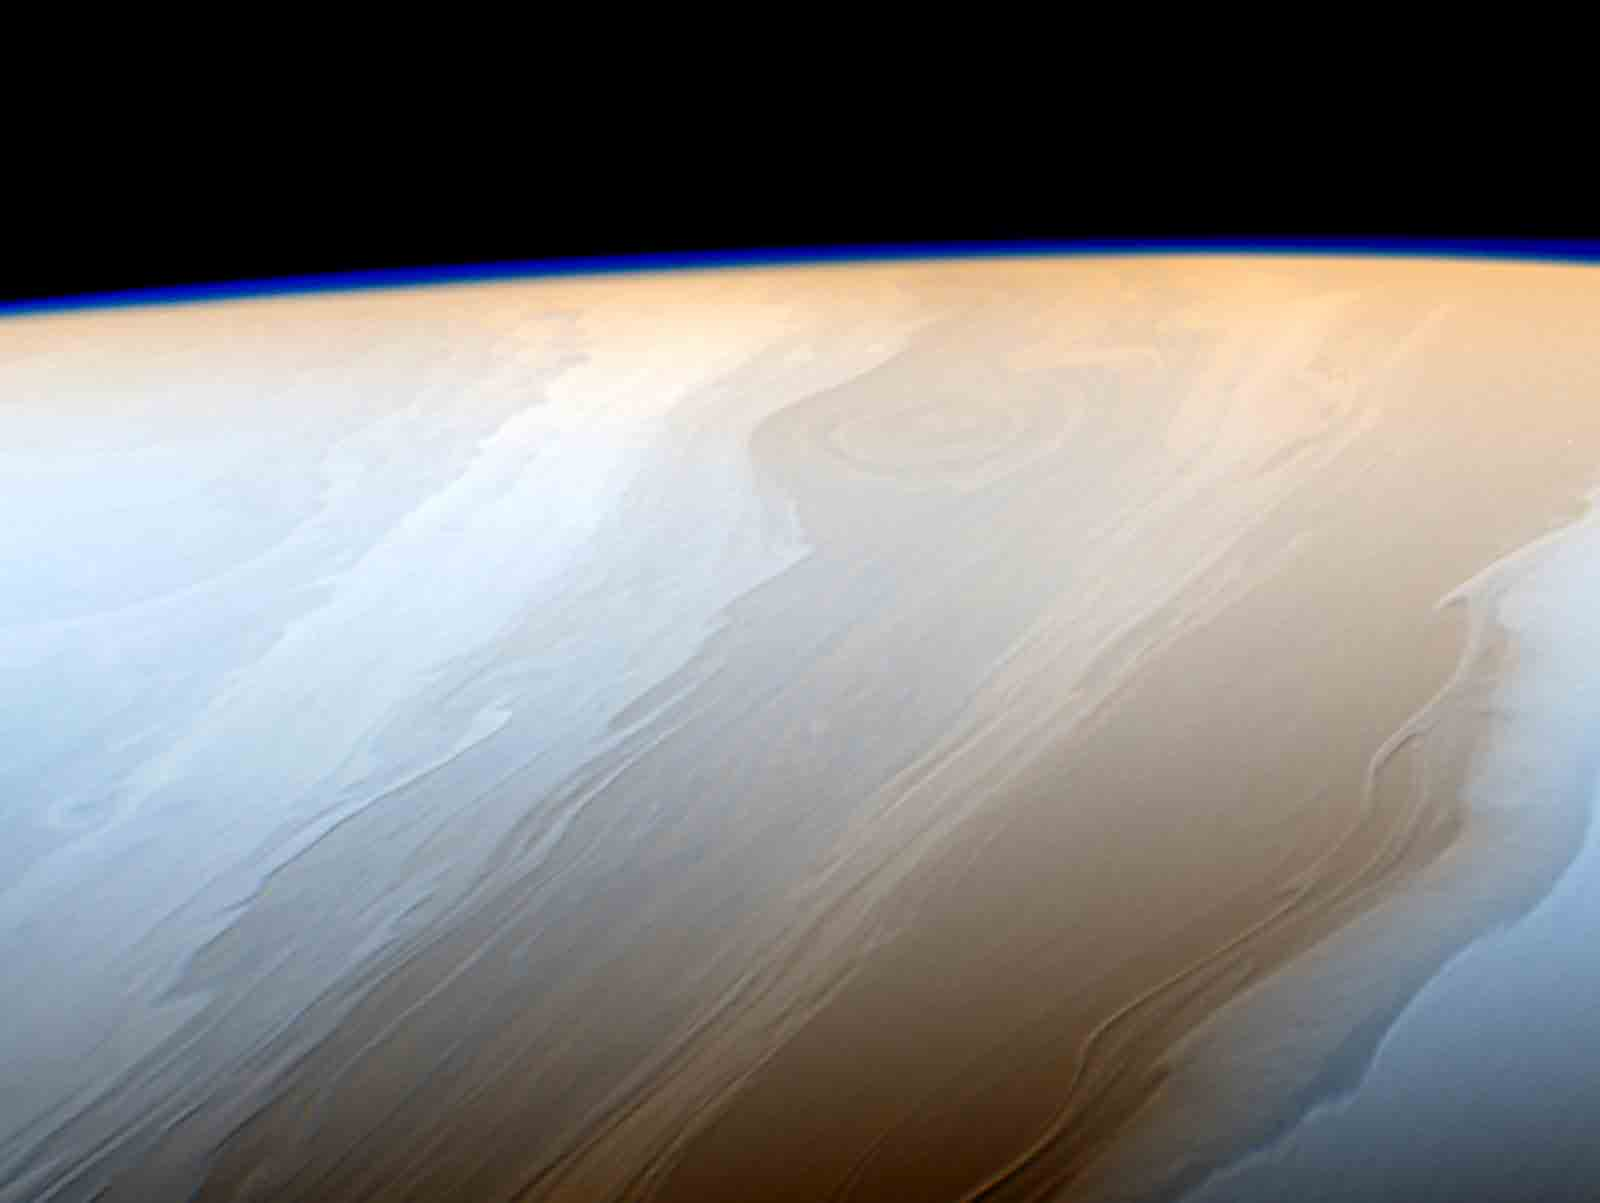 Clouds on Saturn take on the appearance of strokes from a cosmic brush thanks to the wavy way that fluids interact in Saturn's atmosphere. (Courtesy NASA)